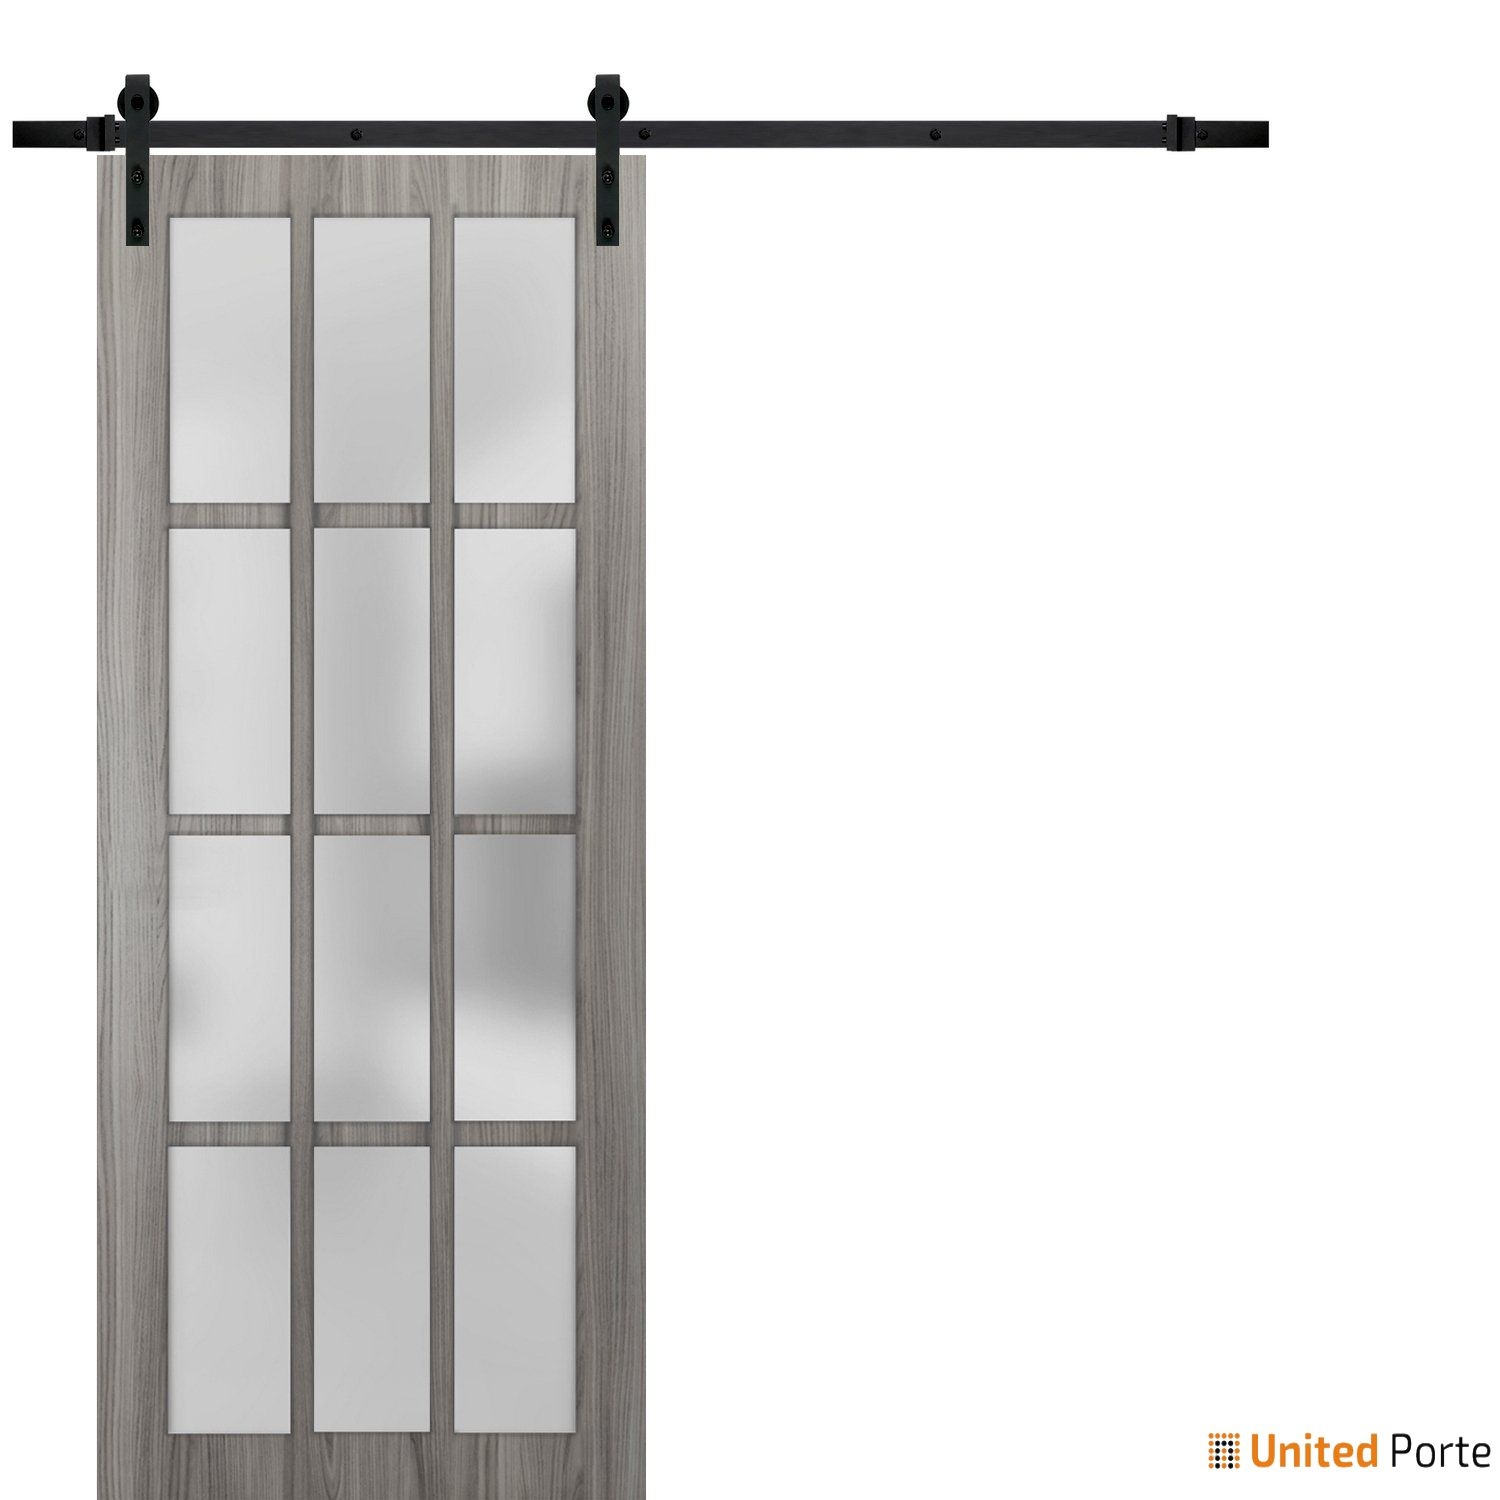 Felicia 3312 Ginger Ash Sturdy Barn Door Frosted Glass 12 Lites with Black Hardware | Solid Panel Interior Barn Doors